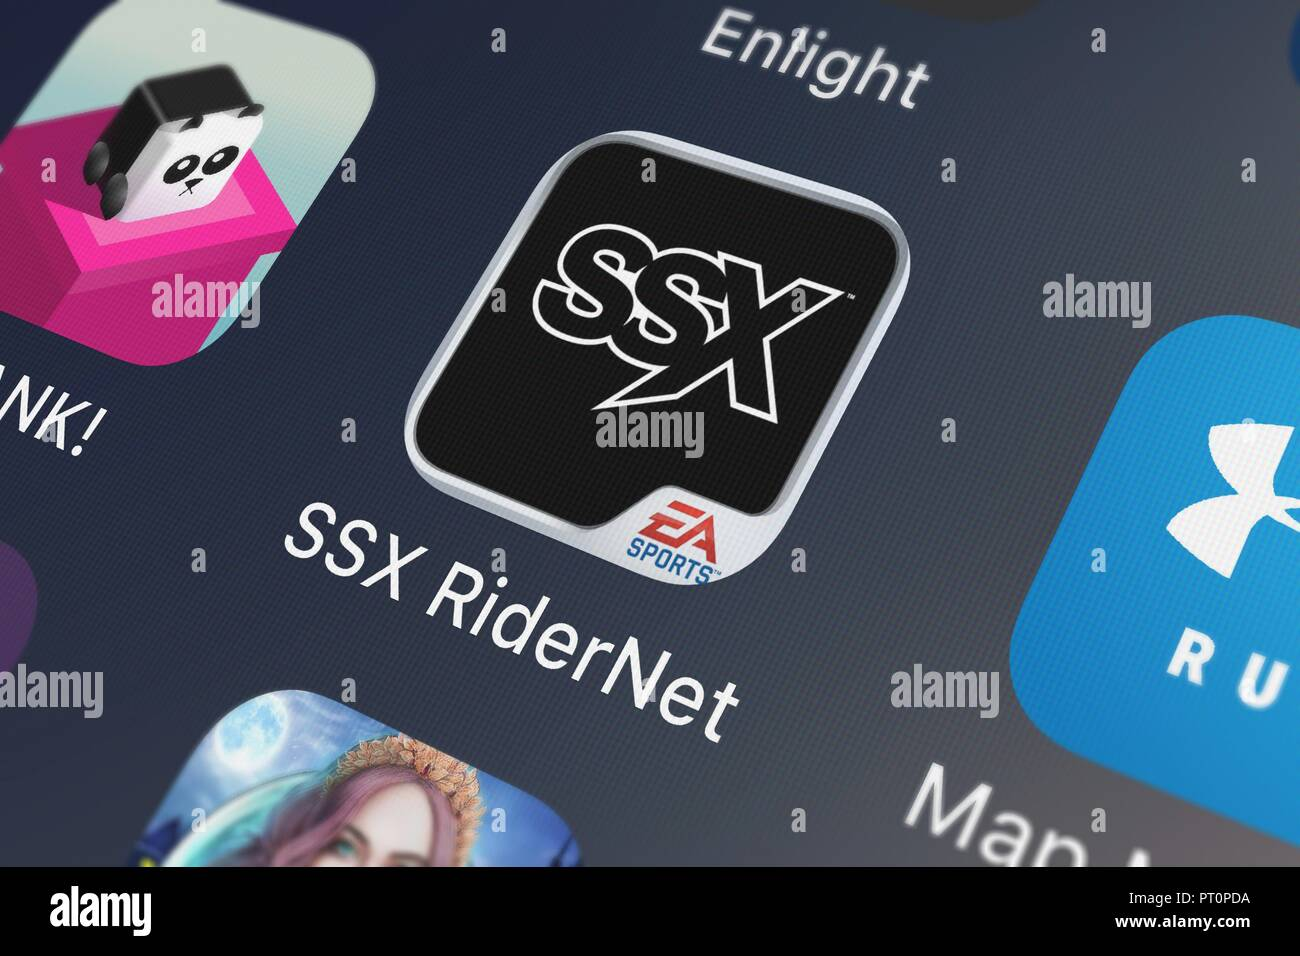 Londres, Royaume-Uni - Octobre 05, 2018 : Close-up shot of Electronic Arts populaires de l'app SSX RiderNet par EA Sports. Photo Stock